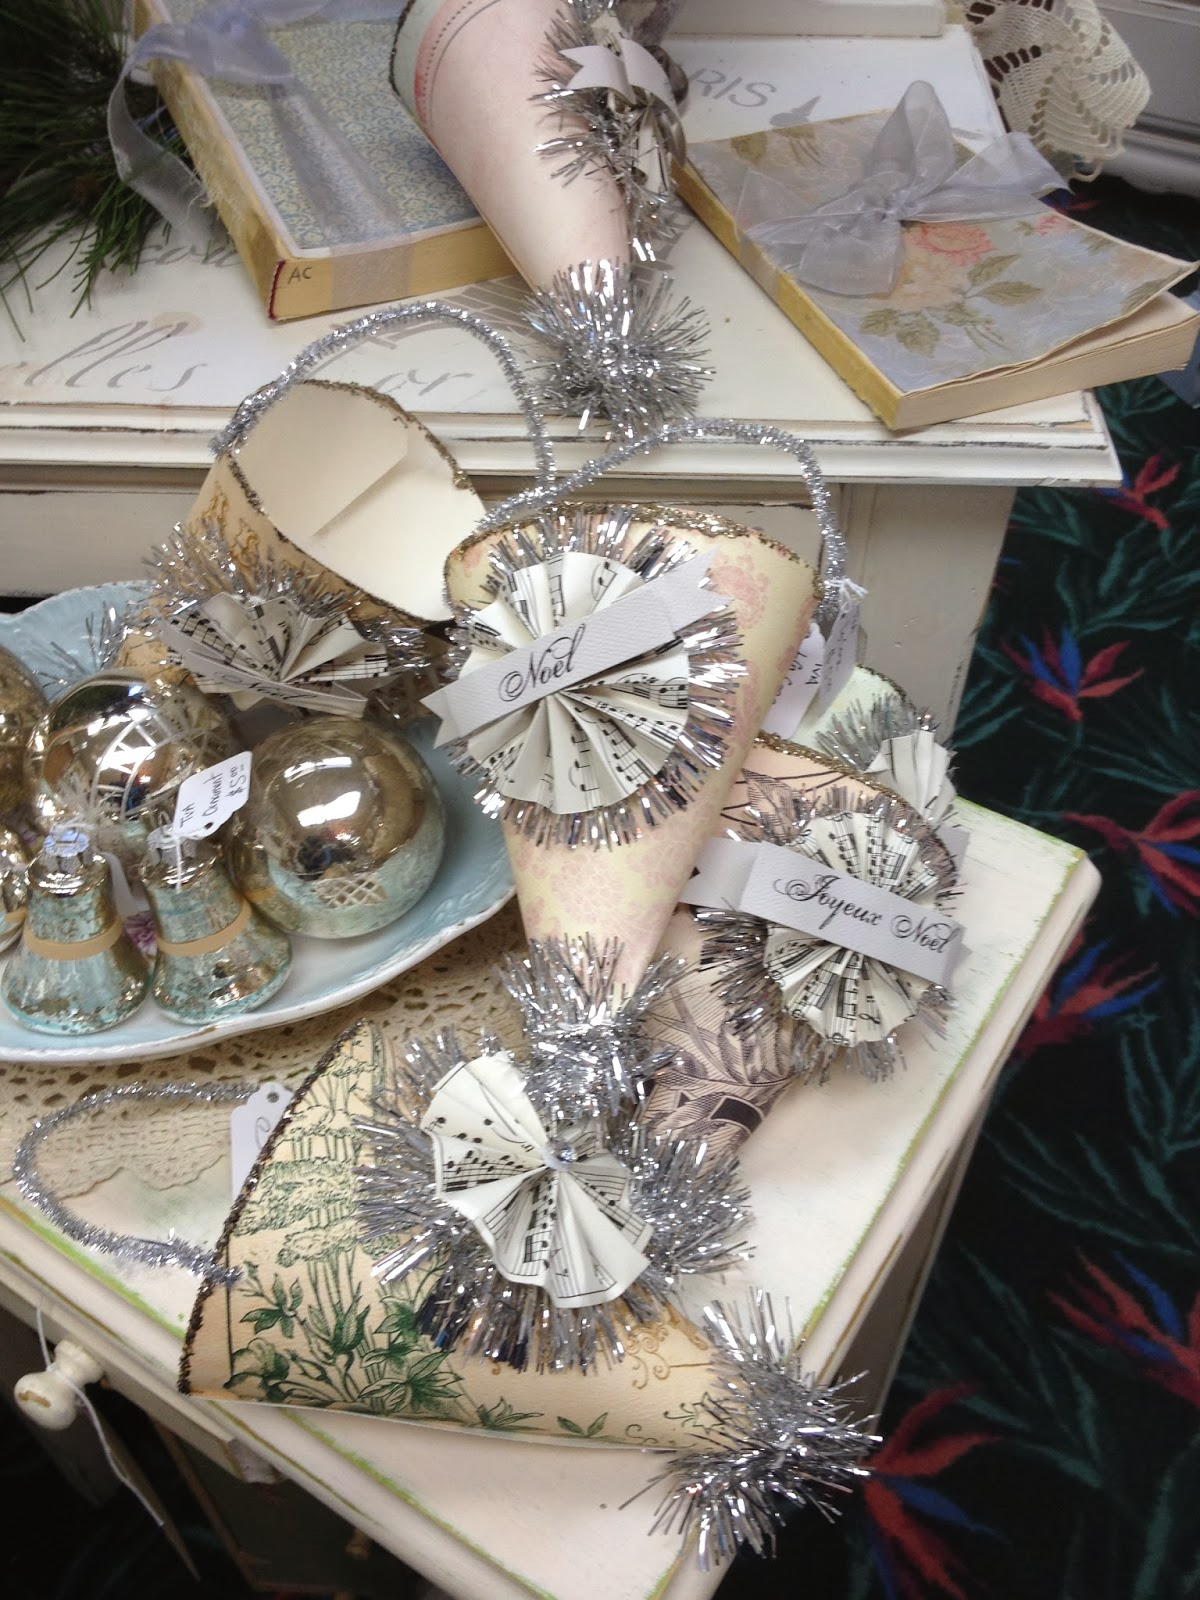 New Christmas Craft Ideas Part - 44: Christmas Craft Ideas: Vintage And New